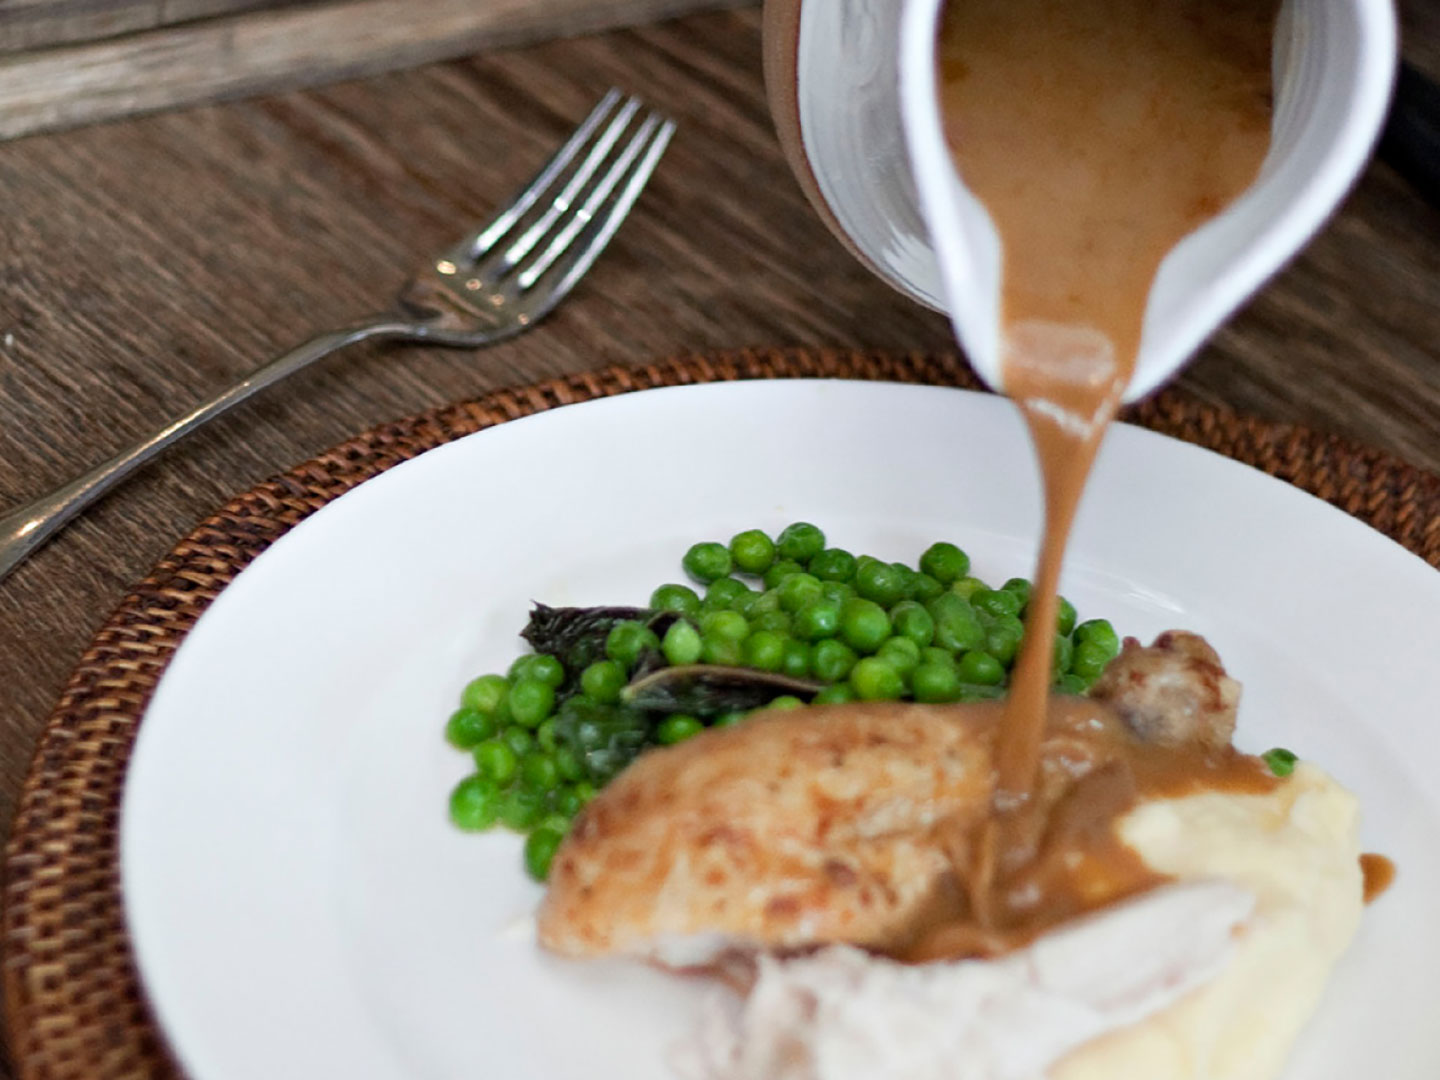 Brown gravy being poured onto a roast chicken lunch.